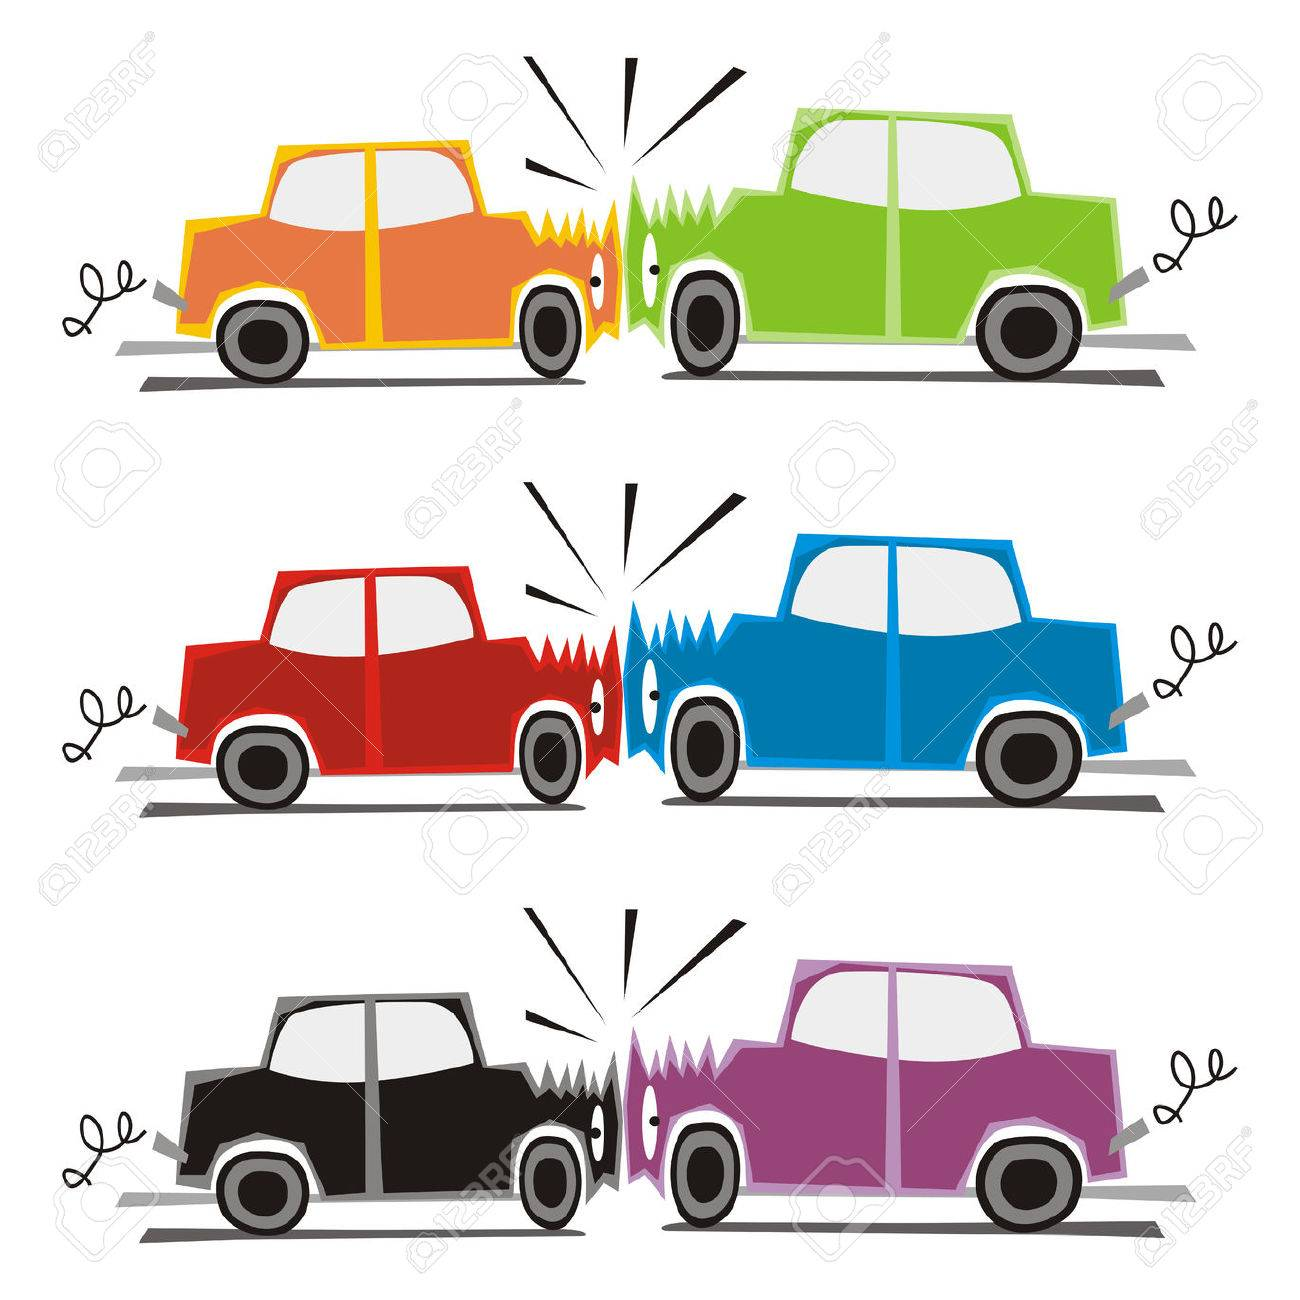 fully editable vector illustration of two cars crash